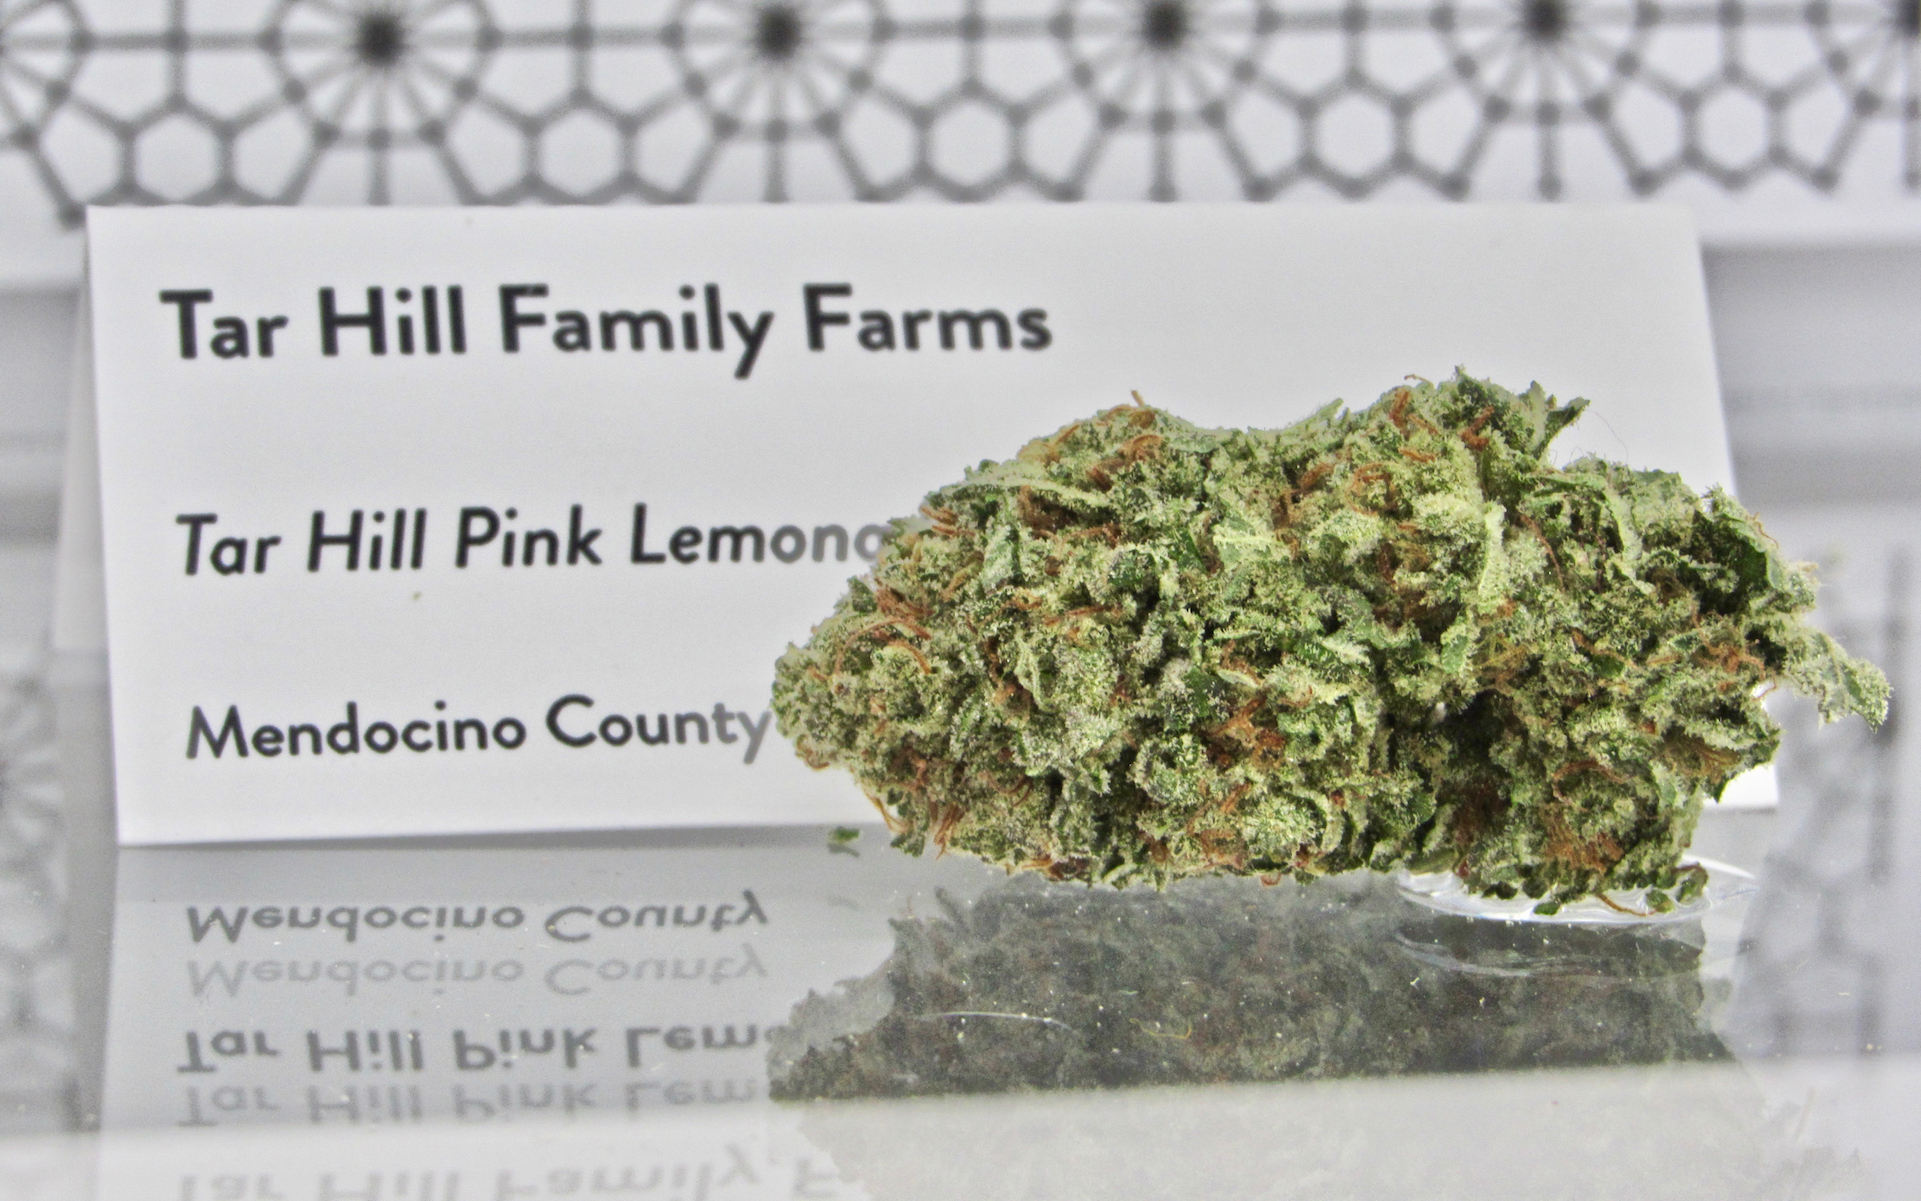 Award winning Tar Hill Pink Lemonade Emerald Cup 2018 (David Downs/Leafly)